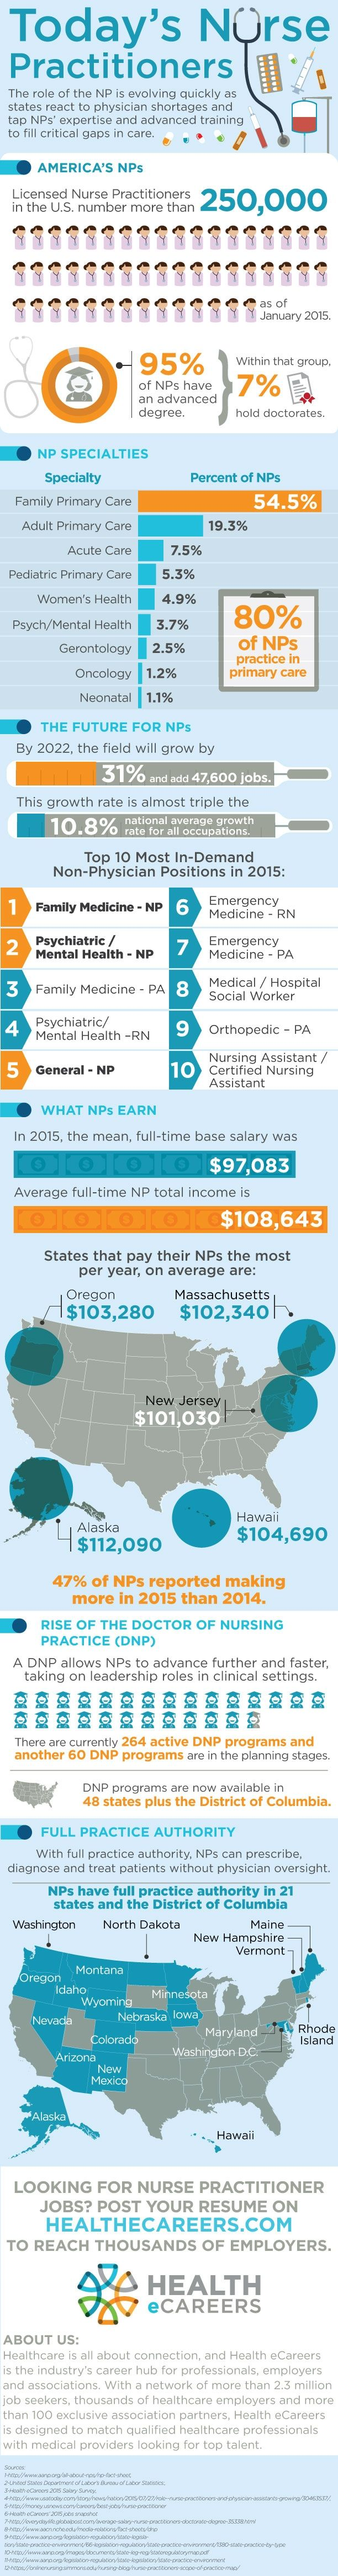 What do NPs make? What are the best states to be an NP? Find out in our infographic!